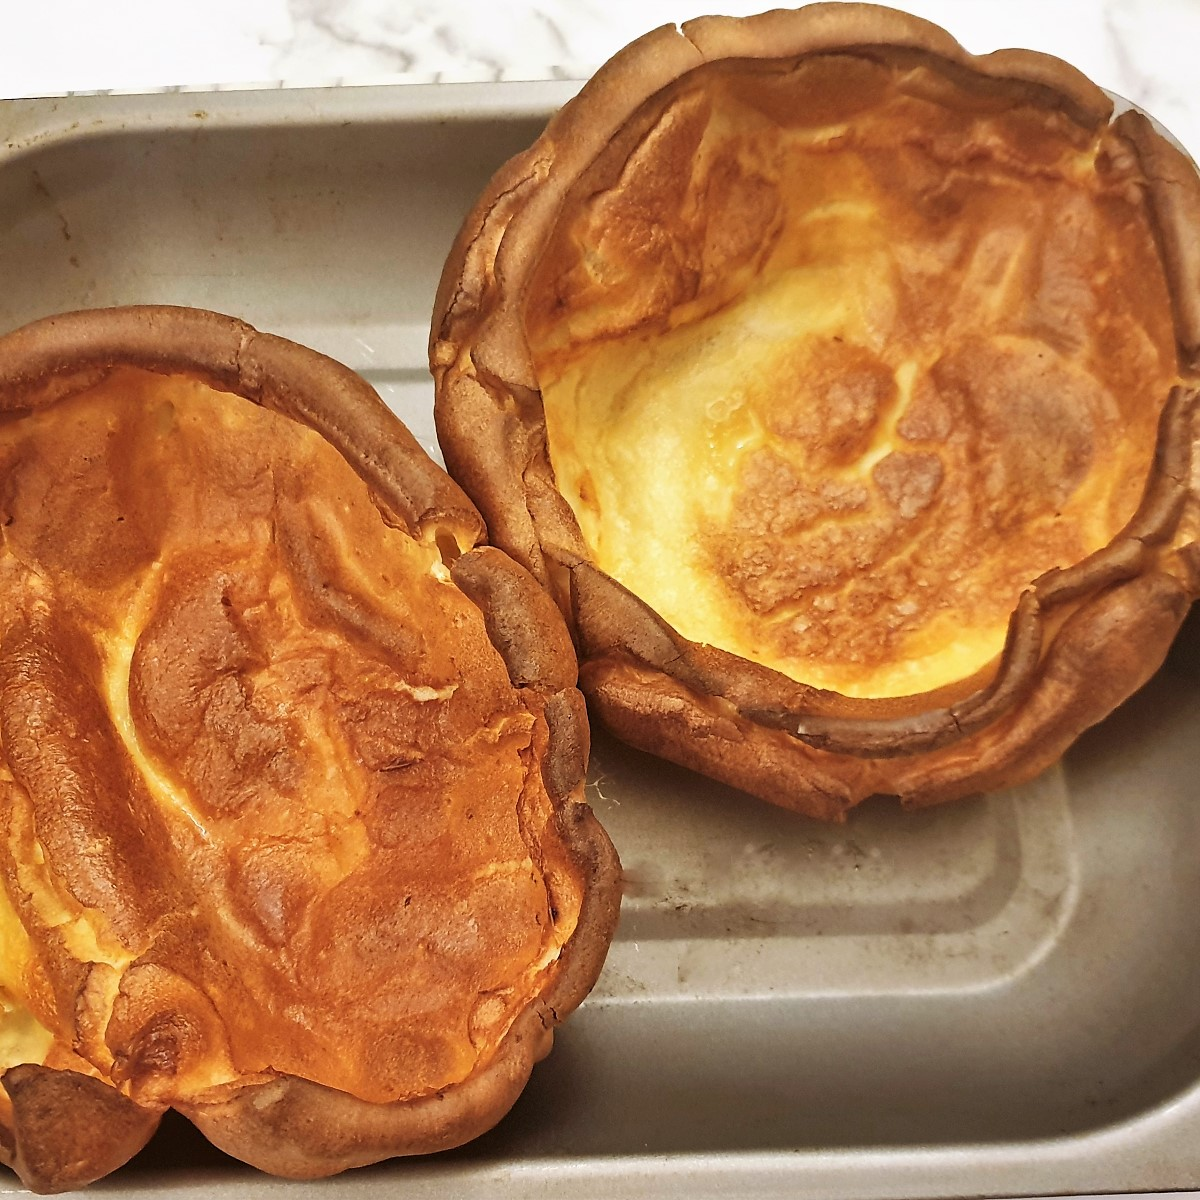 2 giant yorkshire puddings.